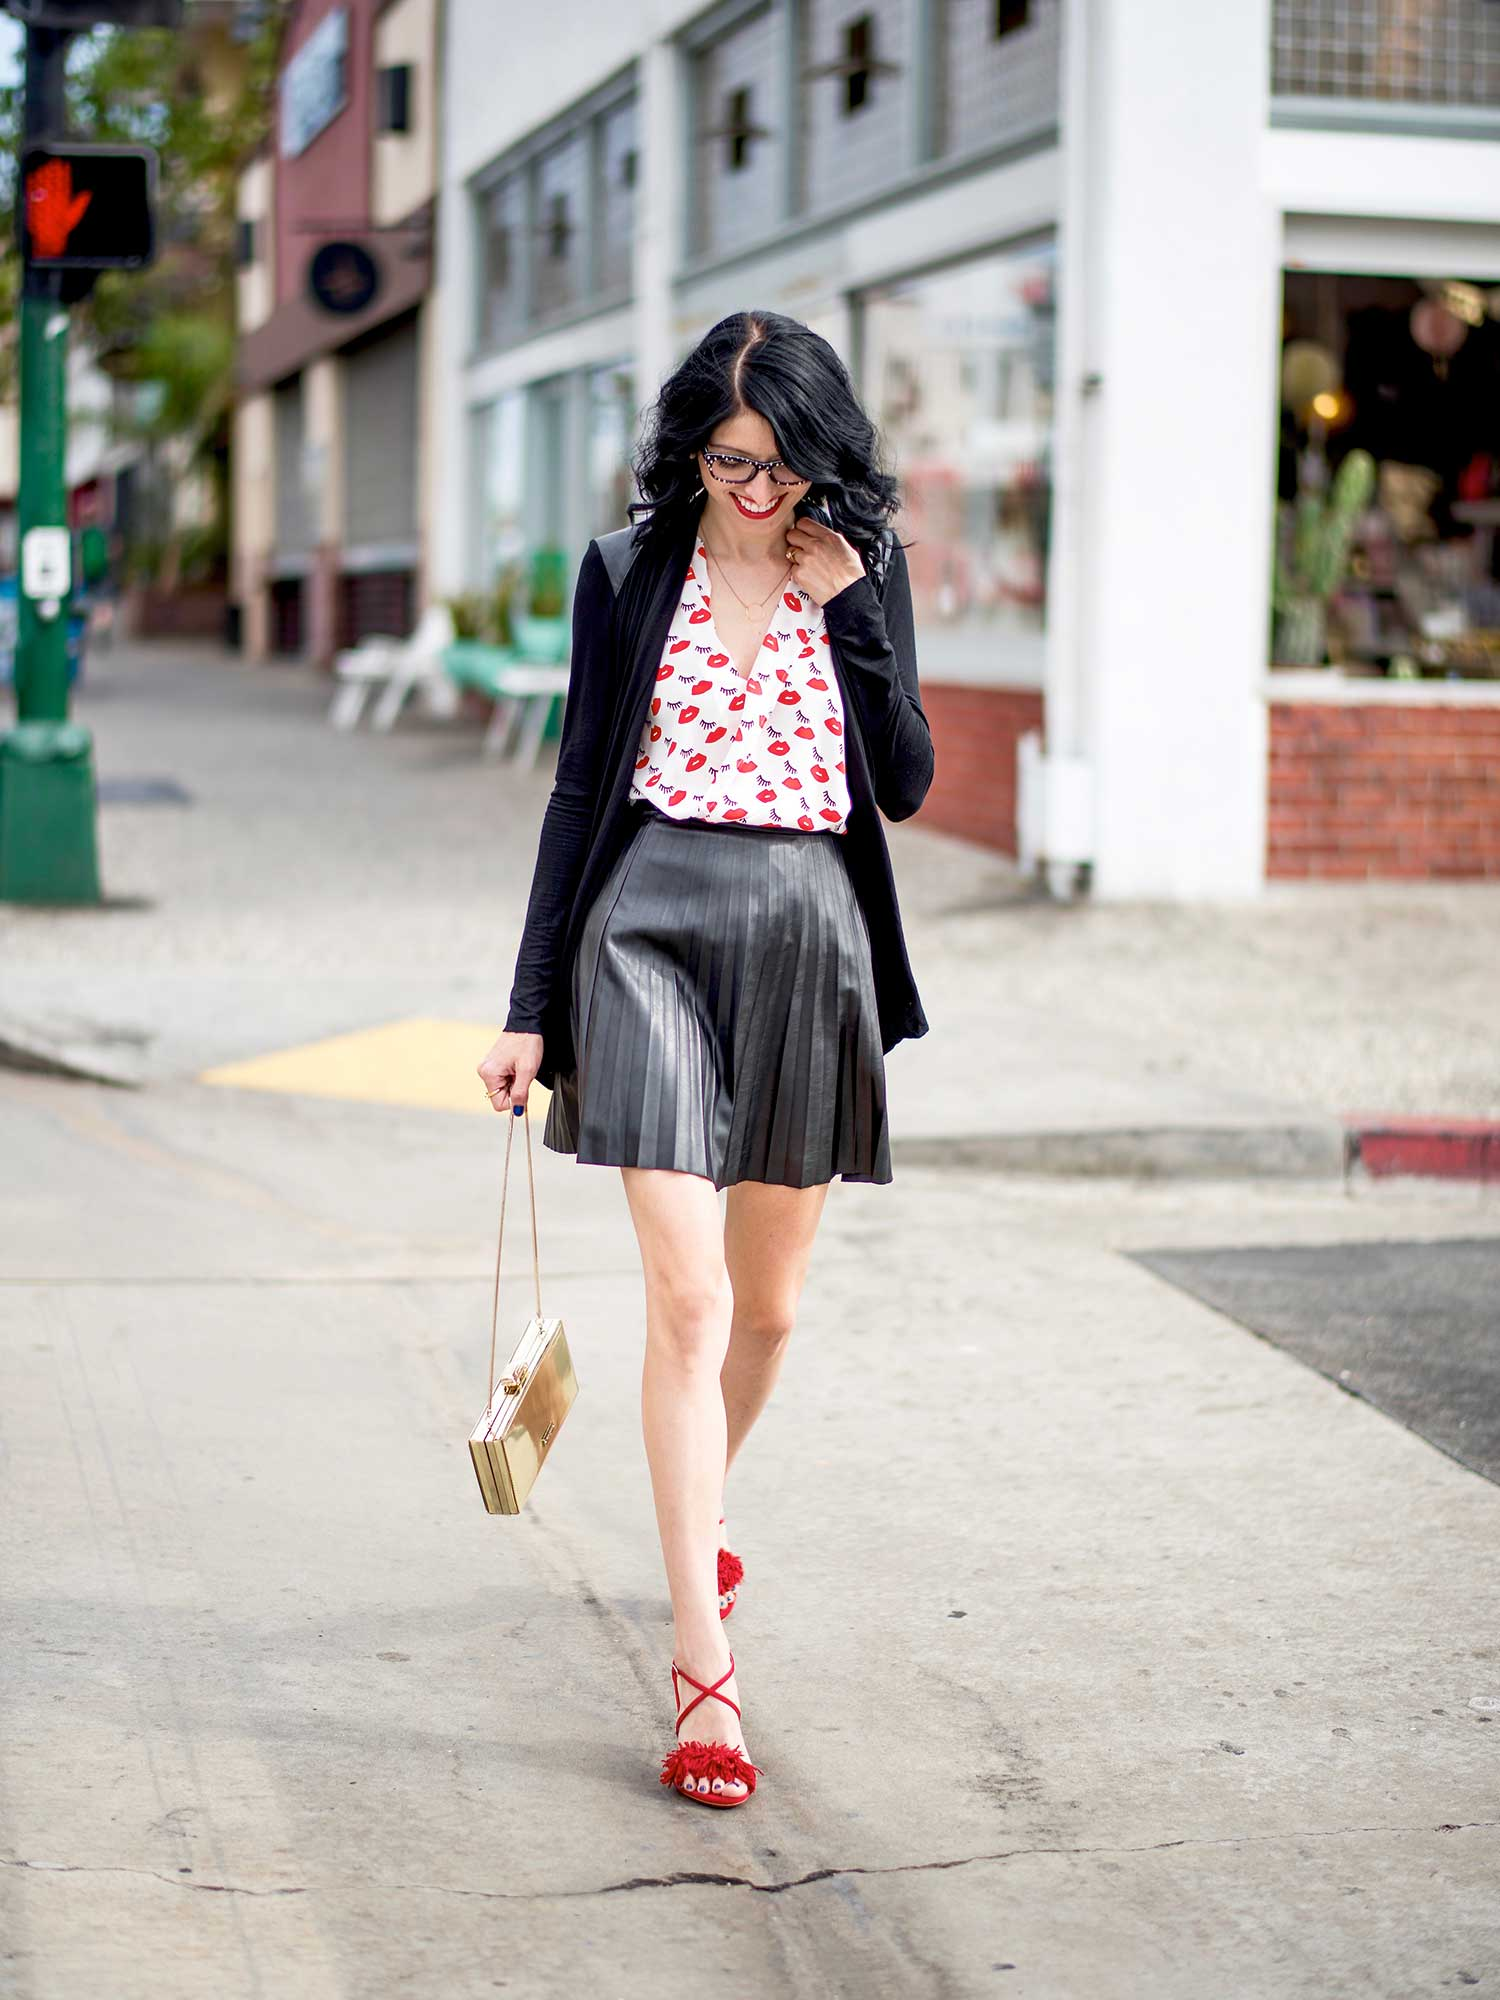 jenna-pilant-lucky-little-mustardseed-san-diego-style-blogger-san-diego-fashion-blogger-how-to-transition-from-summer-to-fall-clothing-1